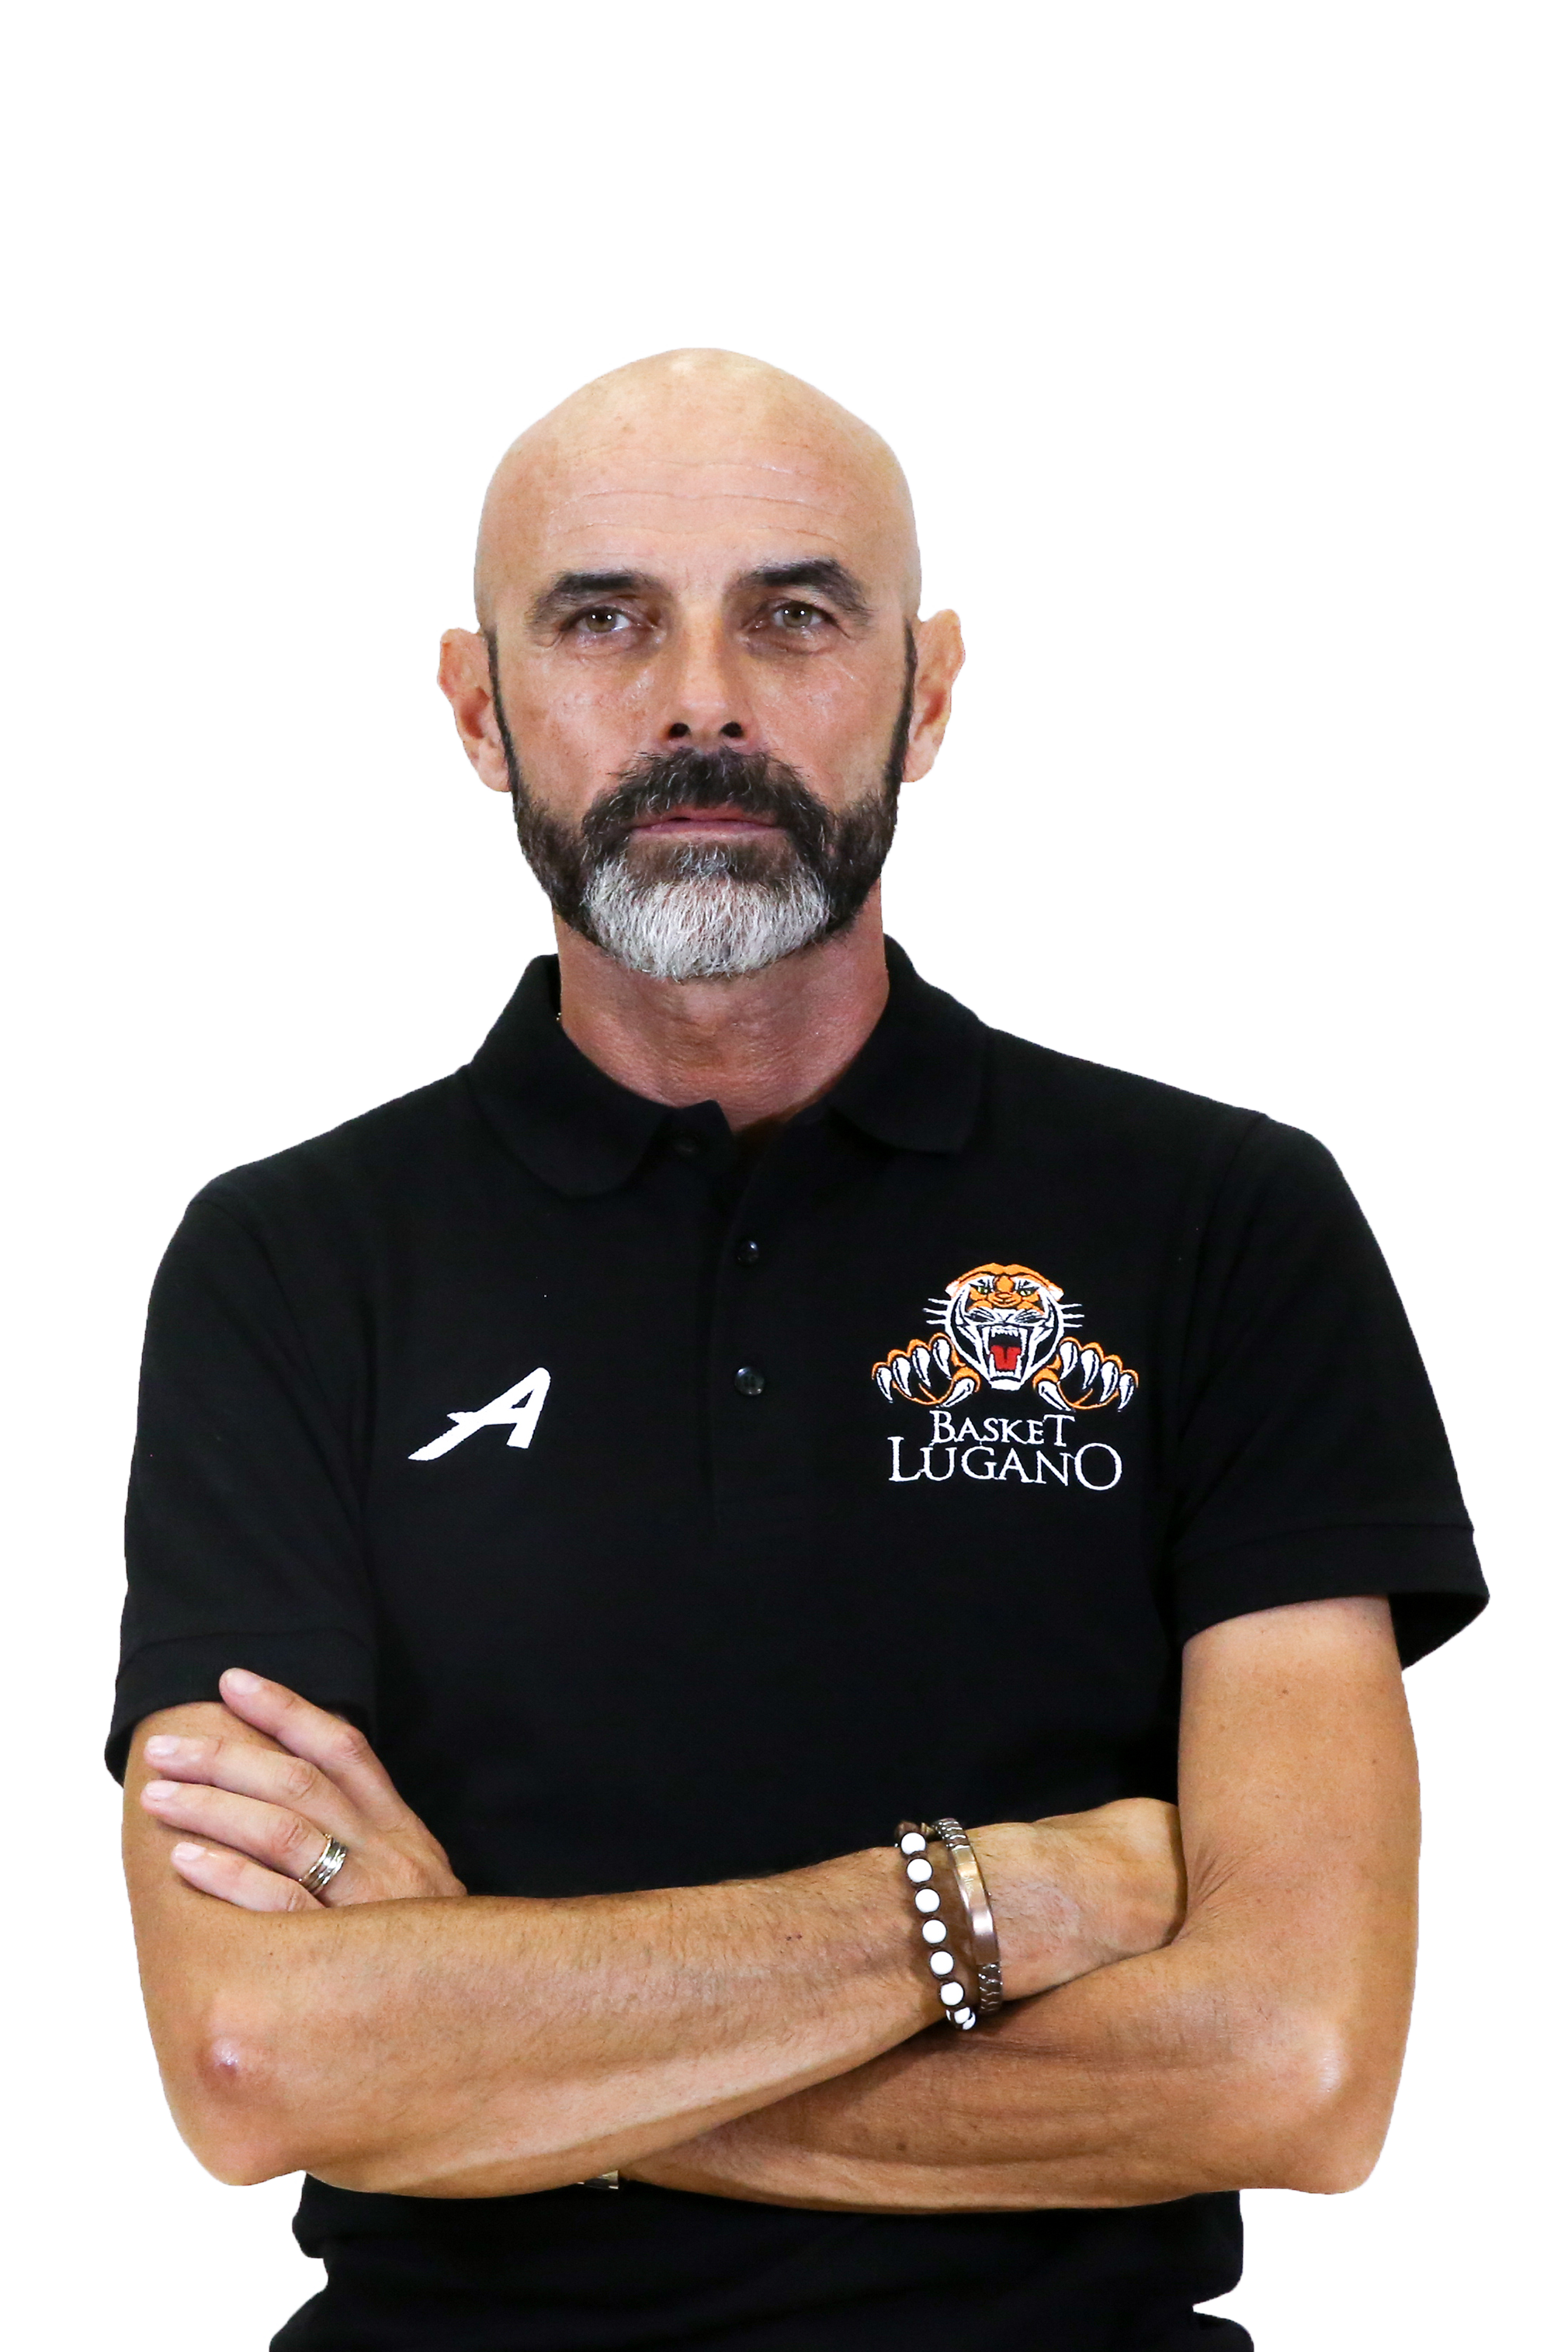 https://www.basketlugano.com/wp-content/uploads/2019/10/Paolo.png